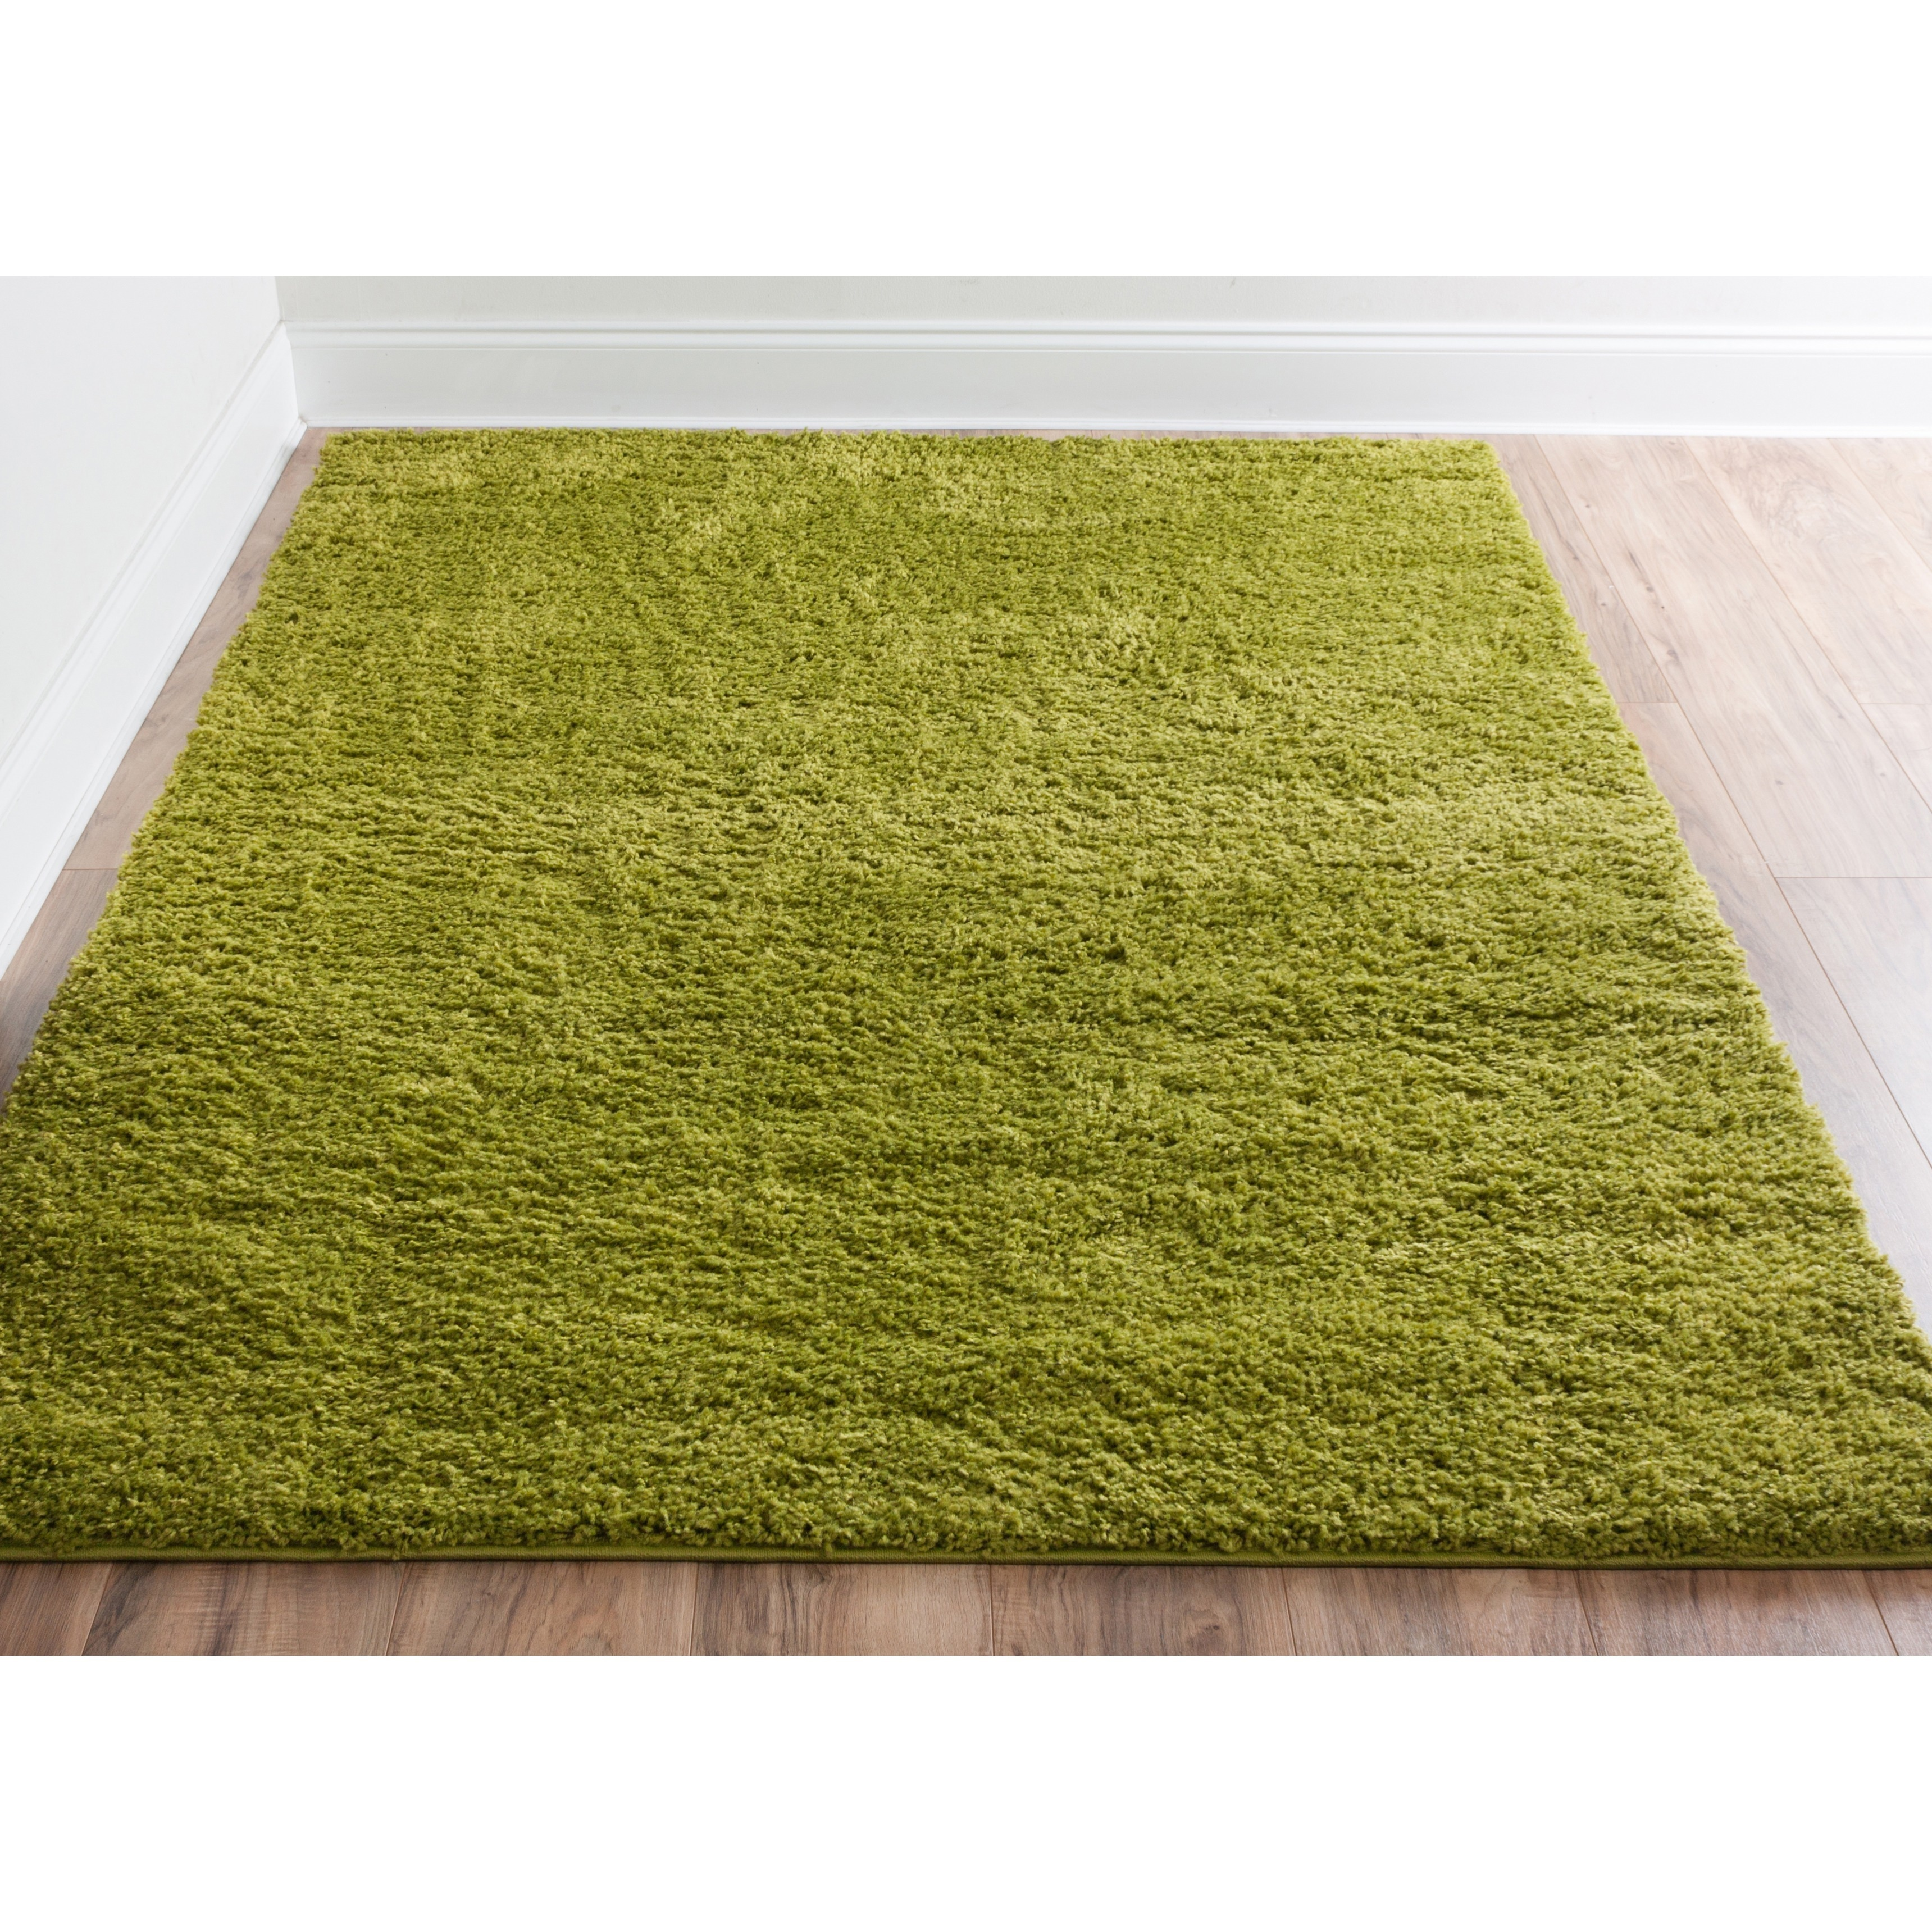 Plain Solid Green Area Rug